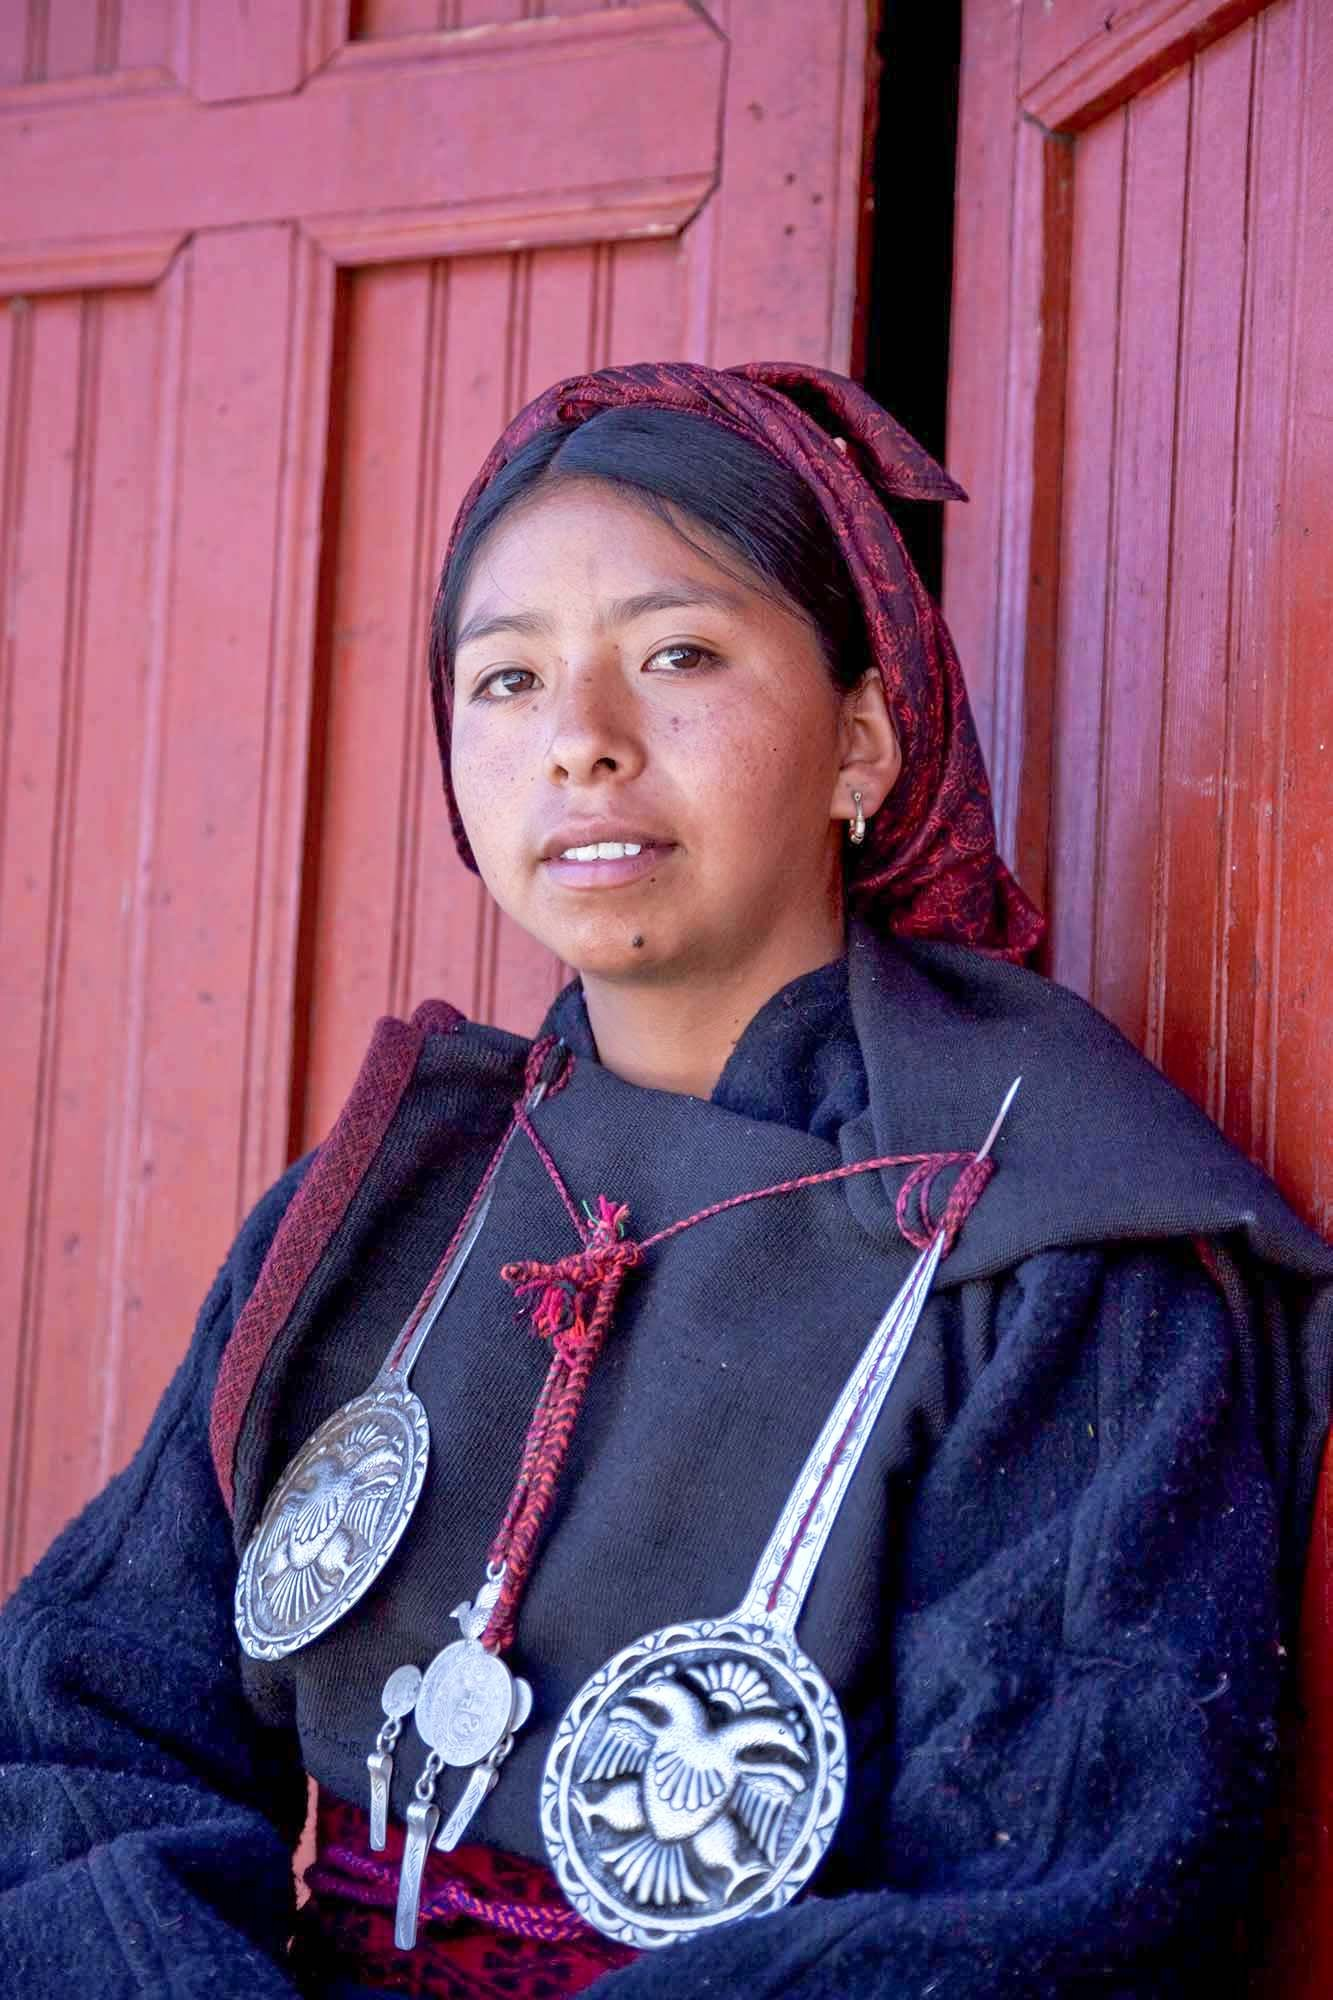 """Katty wearing the old traditional outfit during an official function in Tupe.  The original outfit is made of alpaca wool.  The  urku  consist of three rectangular pieces that are pinned to outside of the  kutuna .  The  kutuna  is made of a lighter wool in a form of a long gown.  A colorful woven border is added to the  urku .  During mourning, the border changes to a sober color to show that they are sad.    This outfit it's always worn with two large silver pins with eagle figures called  p""""itx""""u .  The  urku  are attached to the  katuna  with the  p""""itx""""u .  The  p""""itx""""u  are held in place with a woven thread from which  piñi , made of some old silver Peruvian coins, hang."""